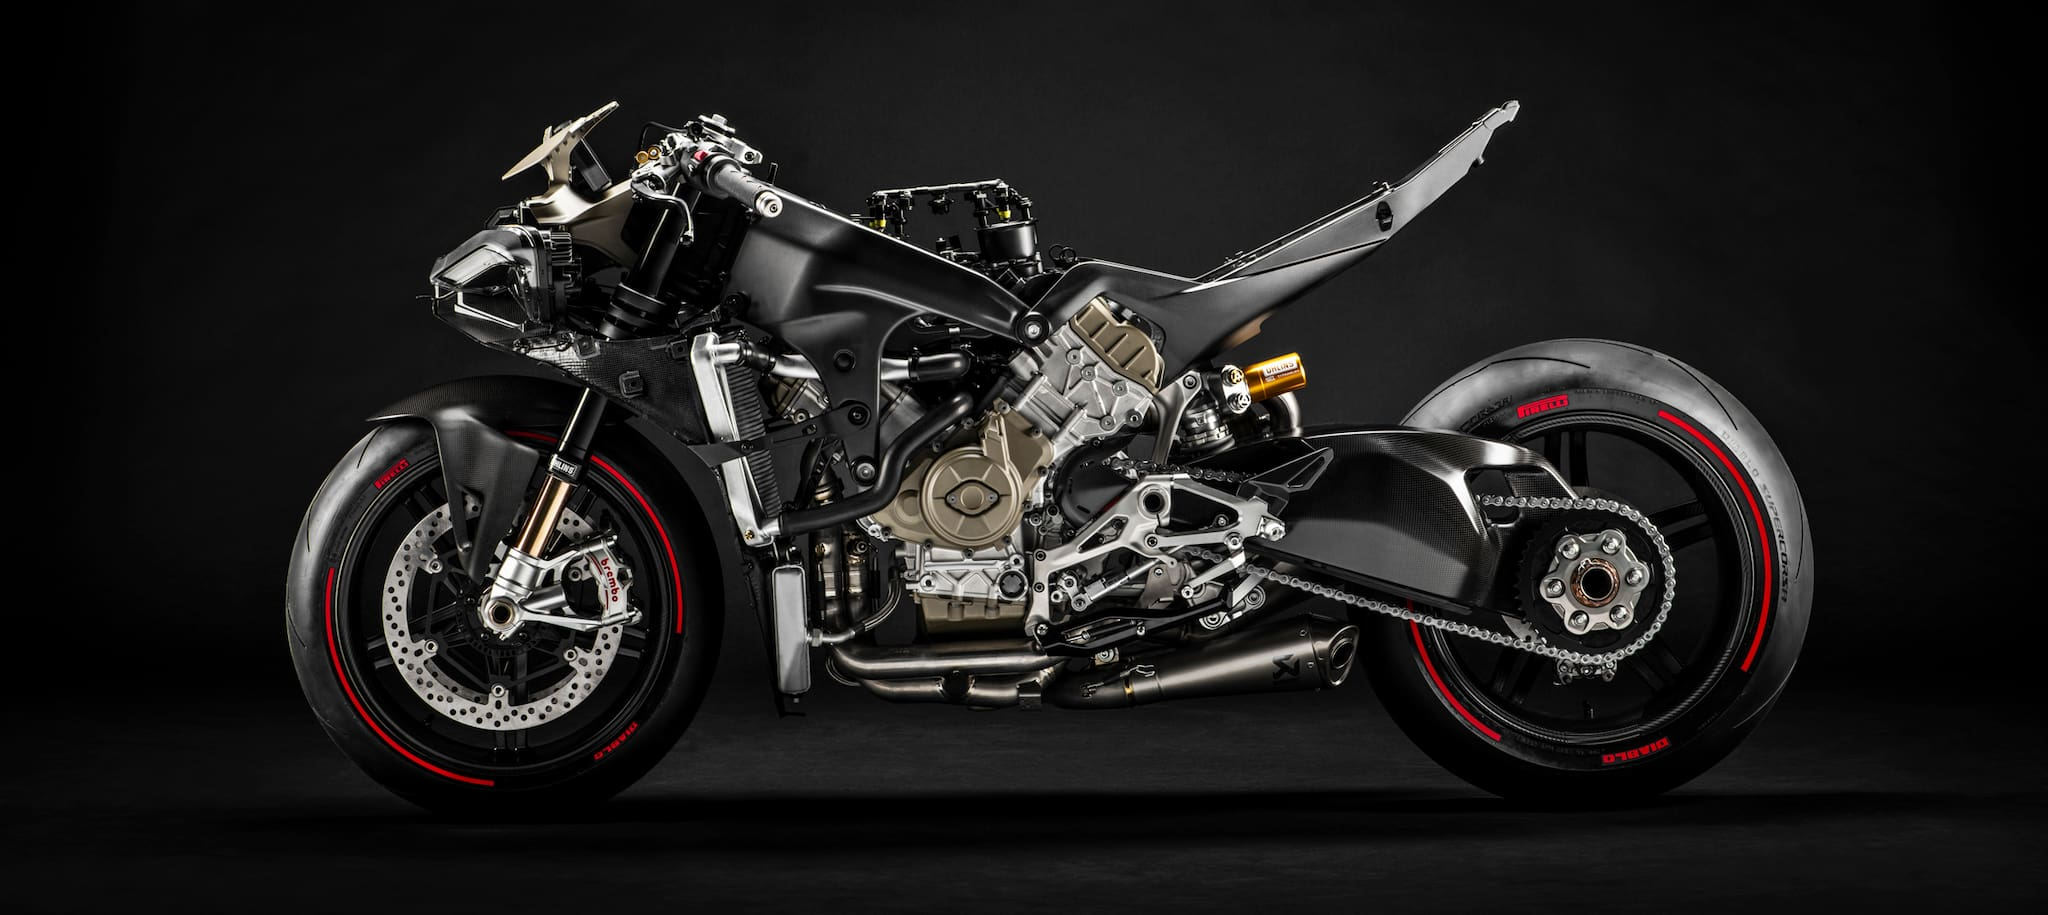 Meet Ducati's Most Powerful and Advanced Motorcycle: The Superleggera